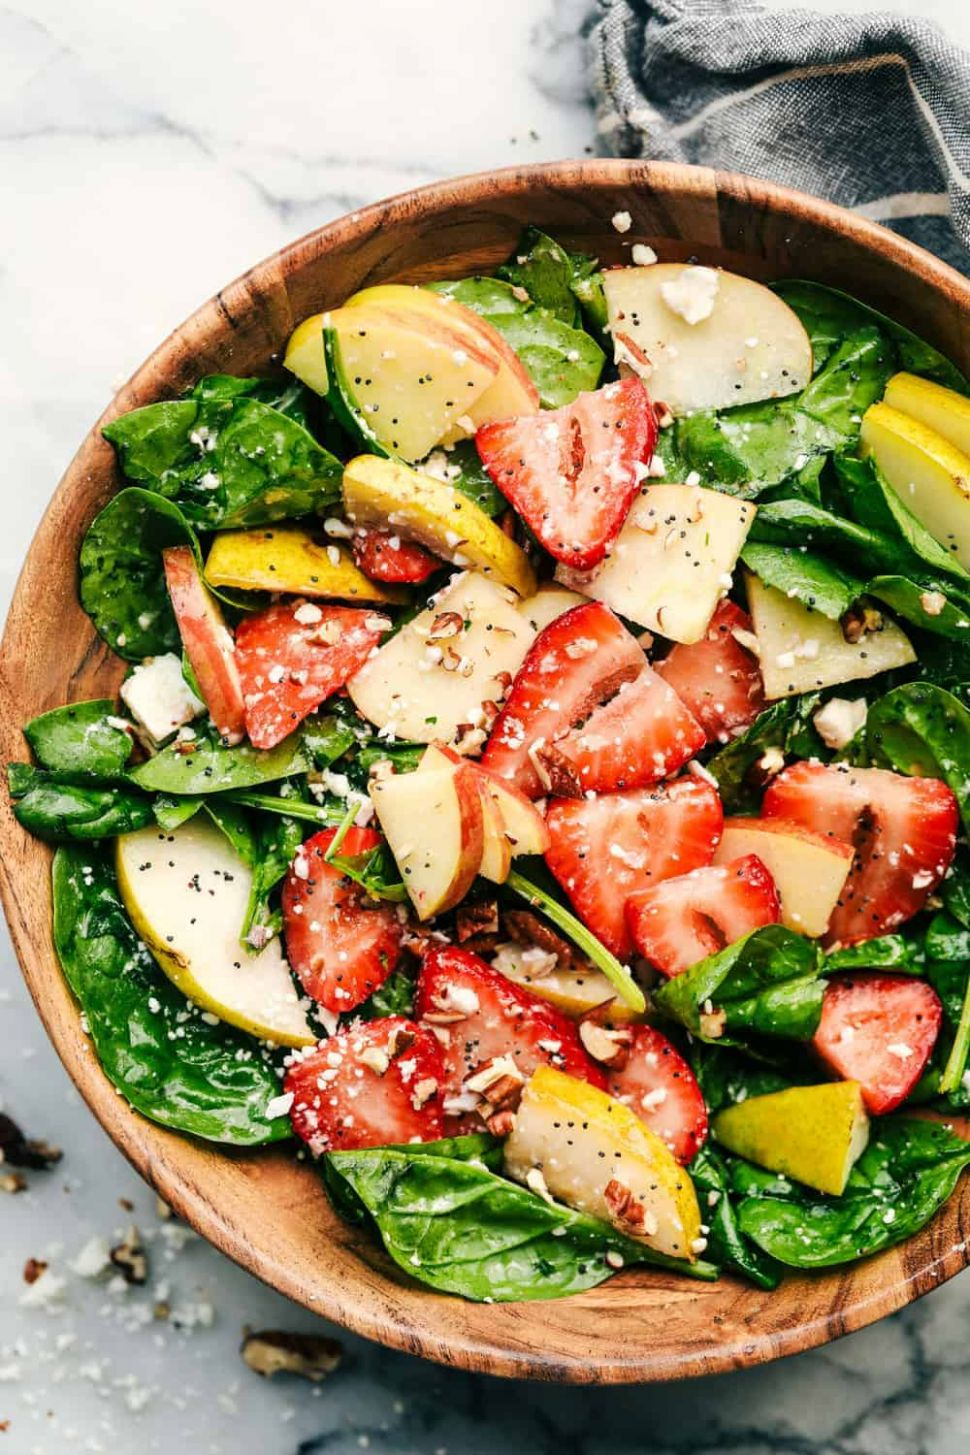 Strawberry, Apple, and Pear Spinach Salad with an Apple Cider Poppyseed  Dressing - Recipes Salad With Apples